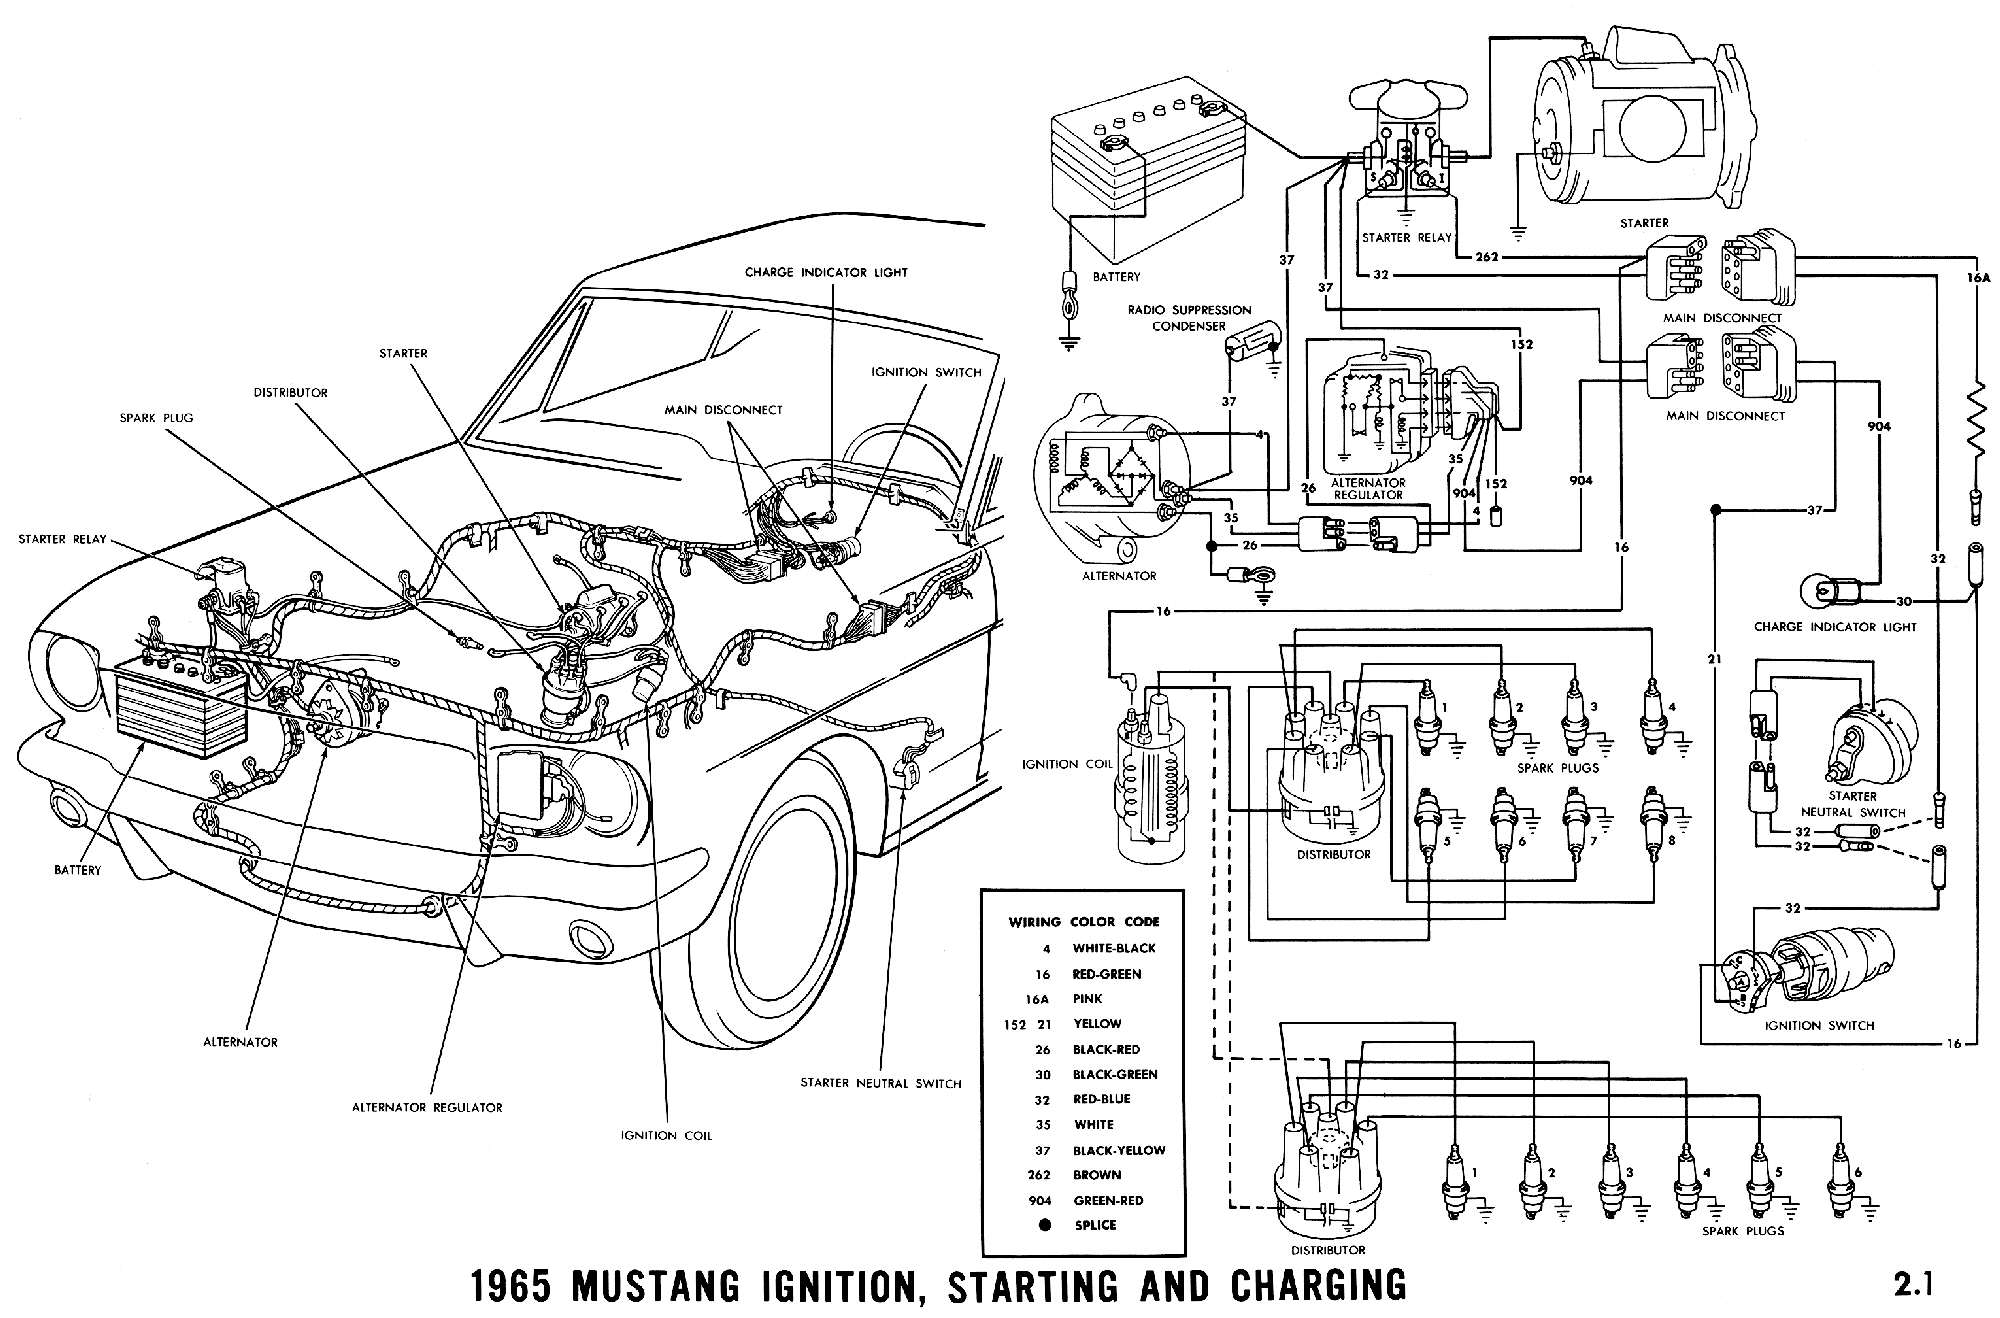 65 Mustang Ignition Wiring - Wiring Diagram • on starter relay outlets, stator wiring, starter kill relay diagram, starter relay circuits, starter relay grounding, diode wiring, boat motor wiring, starter relay cable, starter relay fuse, starter relay welding, electric motor wiring, starter relay bypass, starter clutch, starter relay test, 12v dc wiring, starter relay switch, starter solenoid, starter relay operation, starter relay schematic, starter relay clicking,